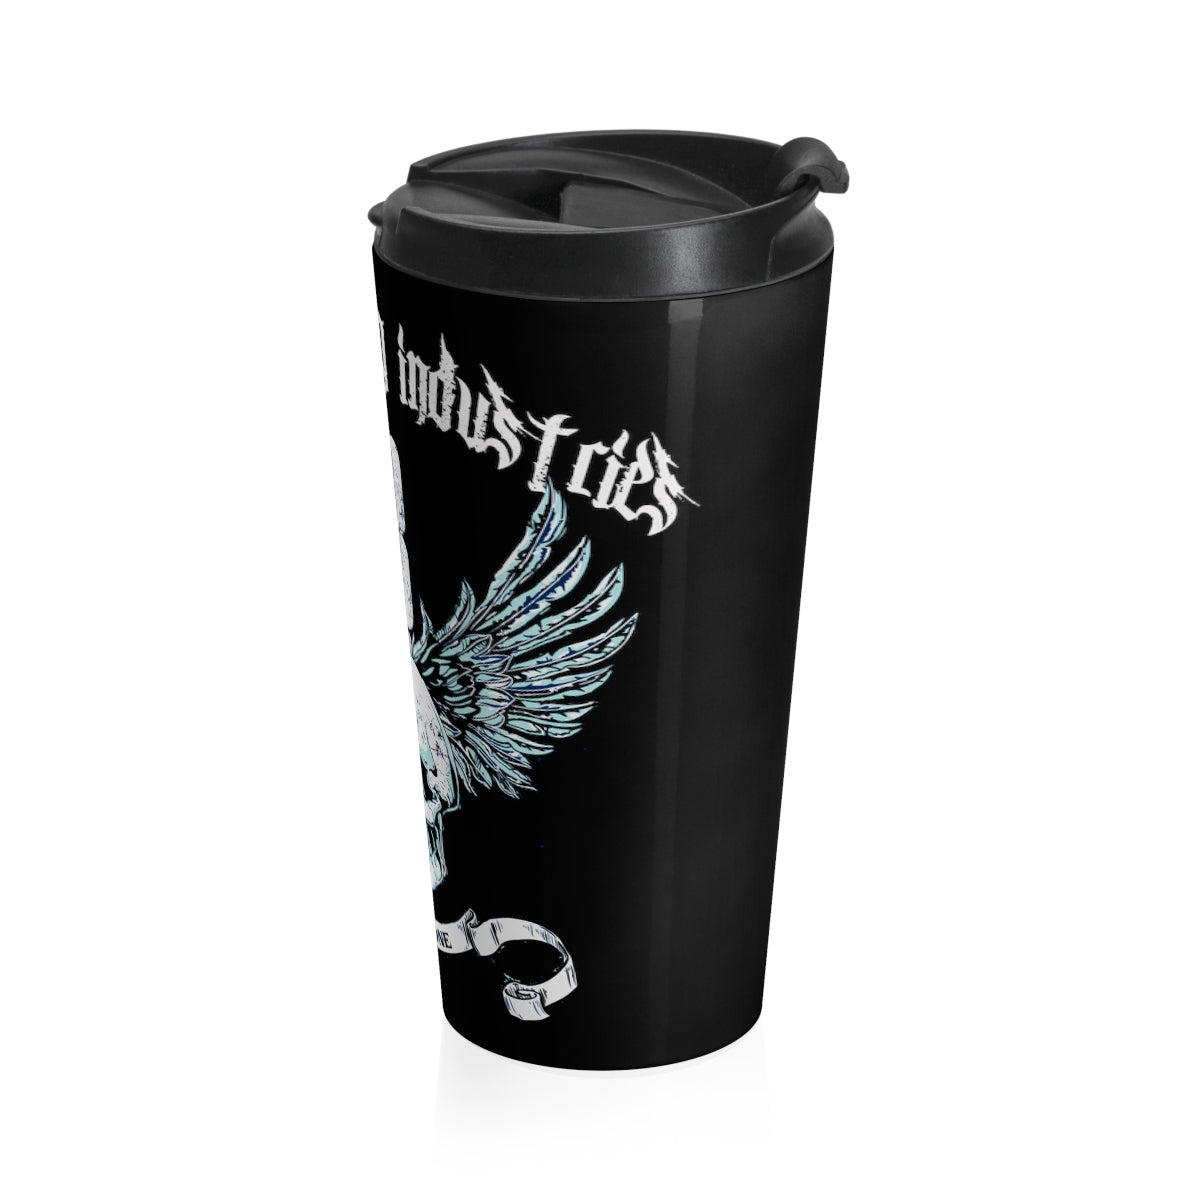 Stainless Steel Travel Mug LUCKY 13